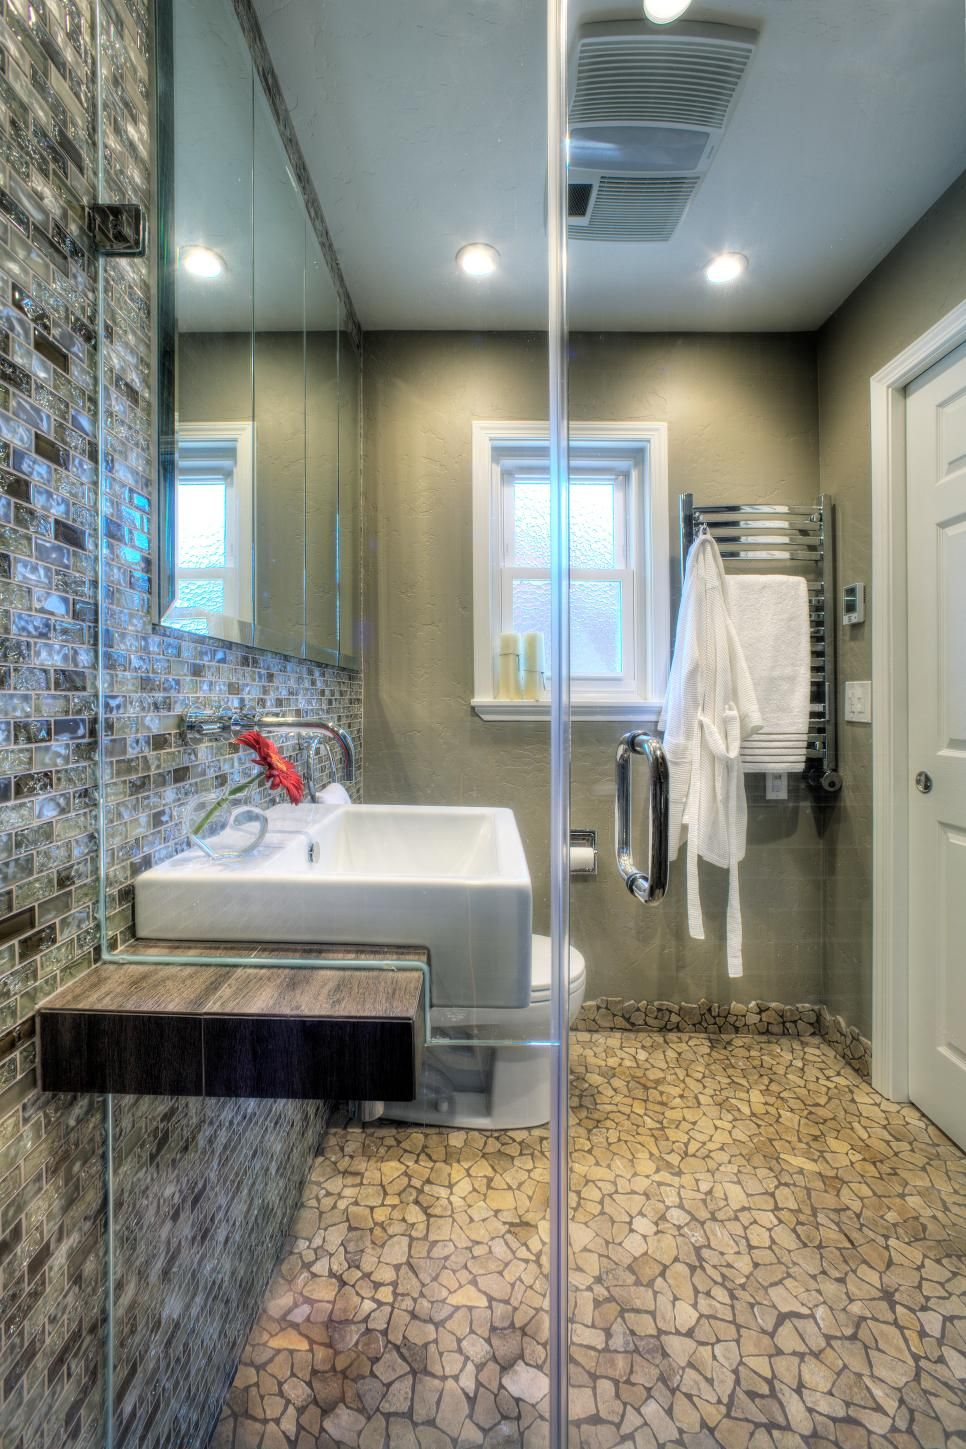 15 Ways To Refresh Your Walls On A Budget  Hgtv Living Spaces Stunning Bathroom Design Trends Inspiration